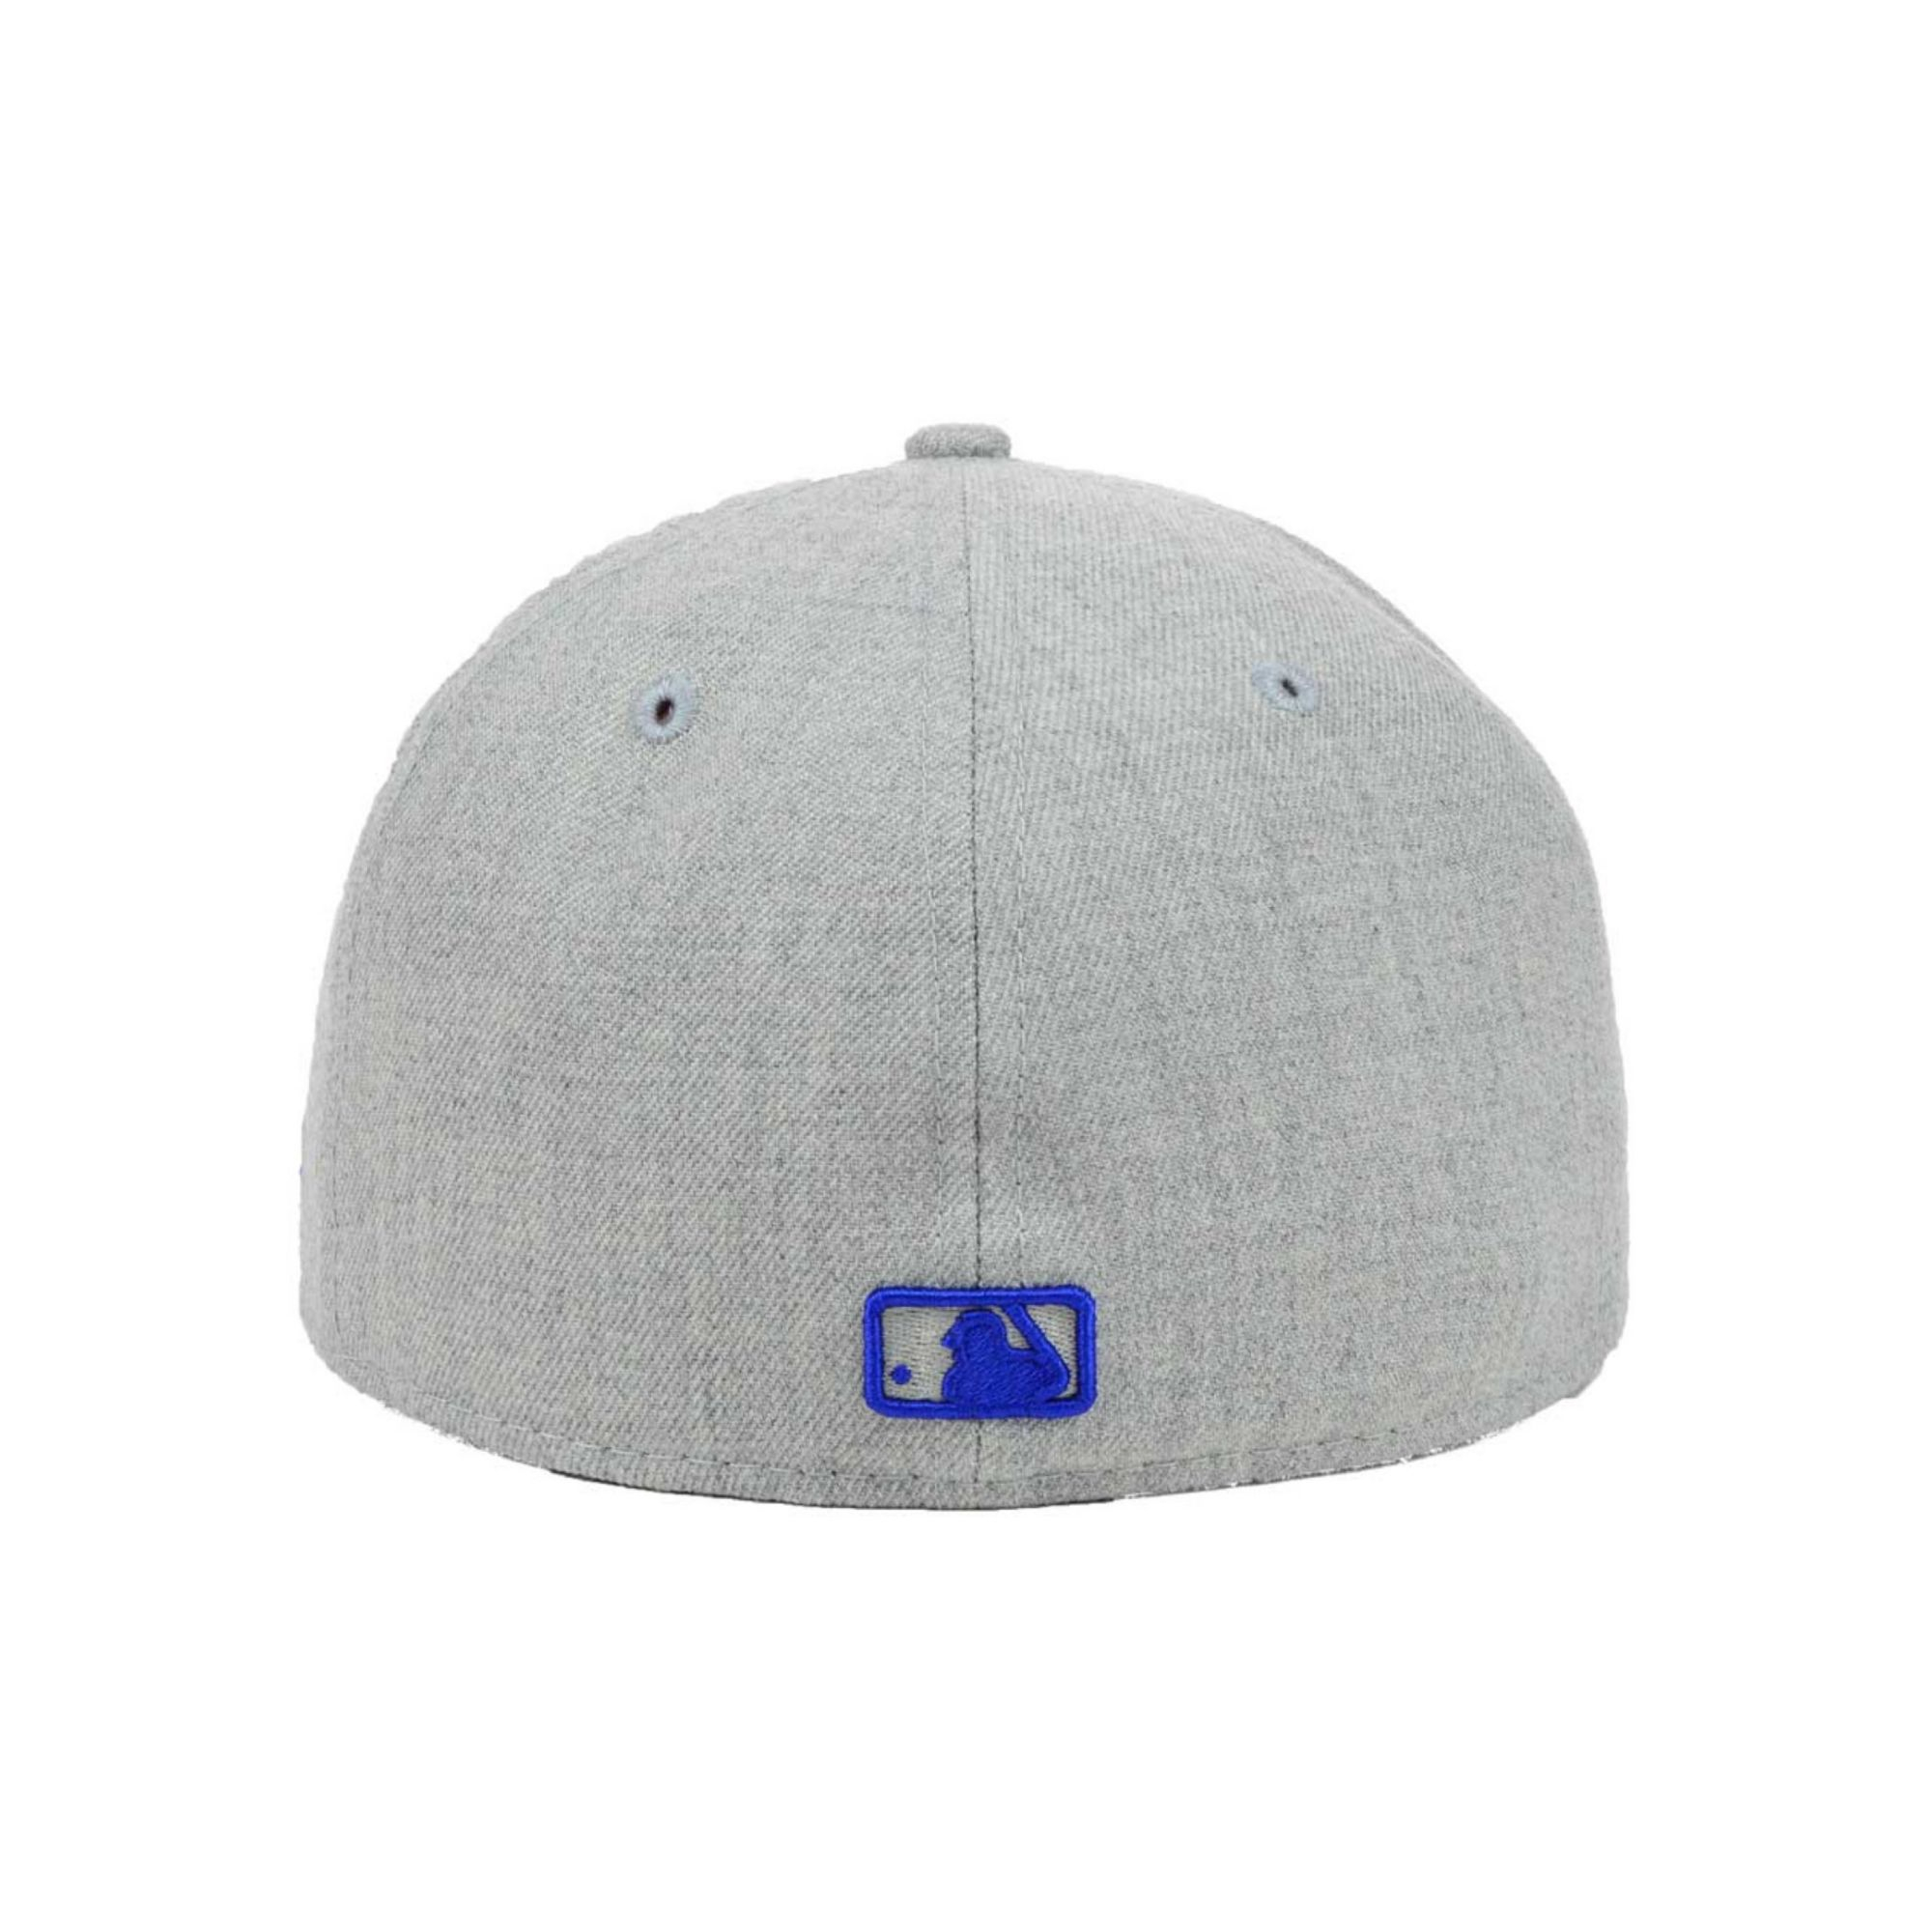 official photos f6c25 37cdc ... top quality lyst ktz detroit tigers mlb heather basic 59fifty cap in  gray for men 0eaaa